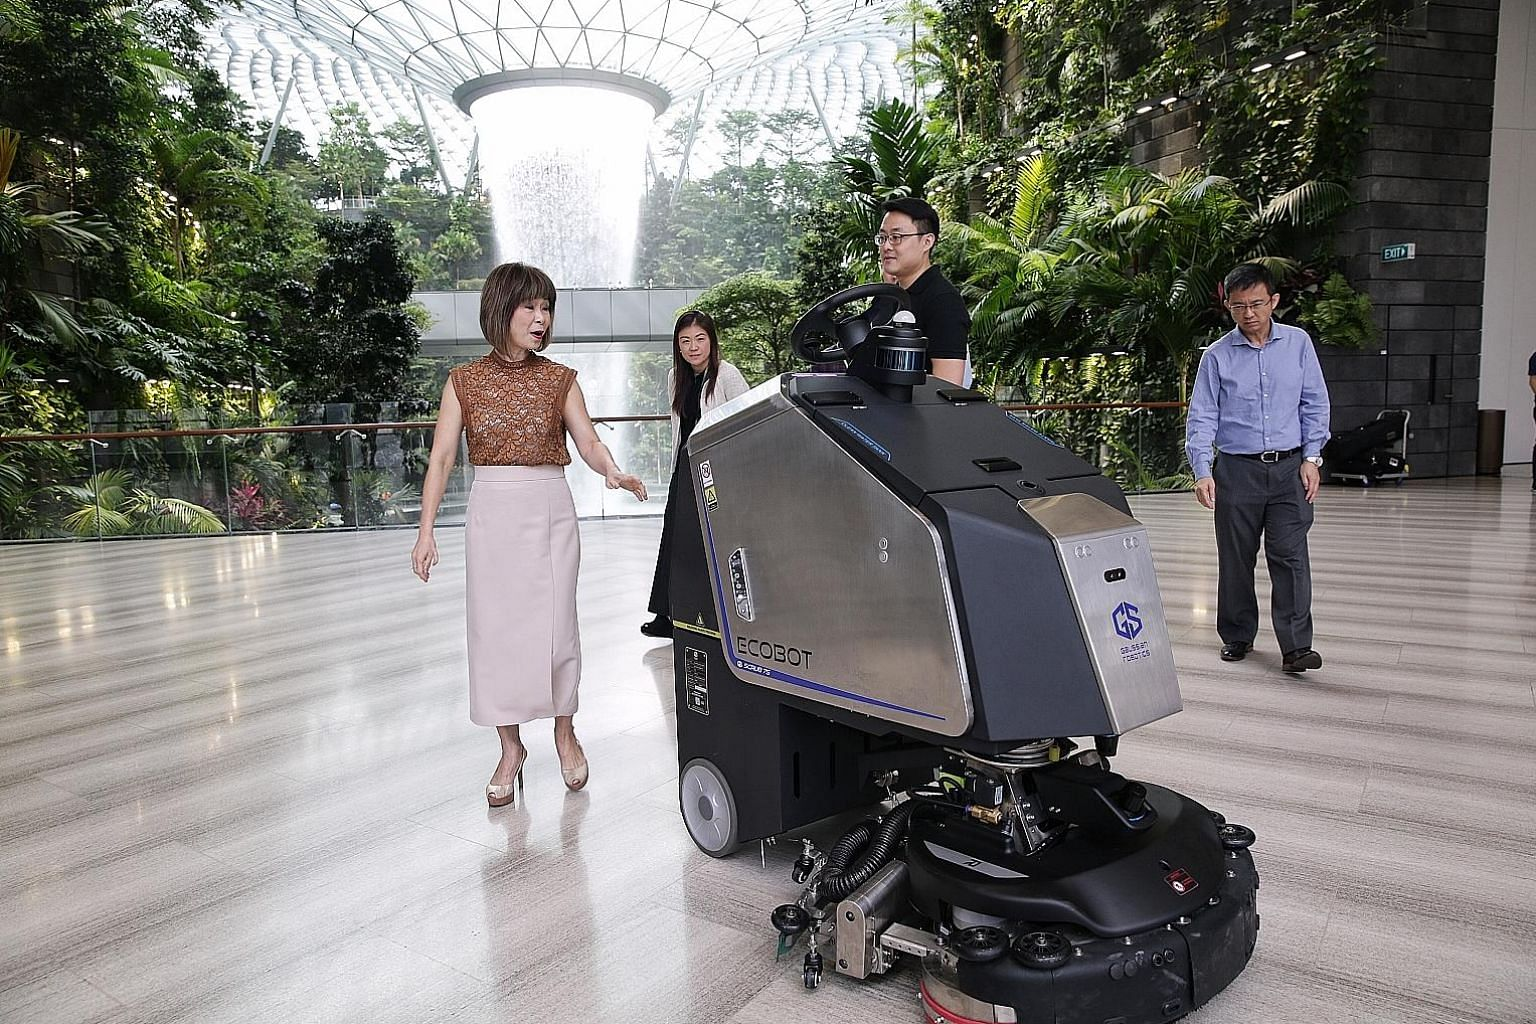 Senior Minister of State for the Environment and Water Resources Amy Khor (far left) being shown an Ecobot autonomous scrubber at work by Gaussian Robotics' head of business development Kevin Lee (in black) yesterday. With them were Jewel Changi Airp